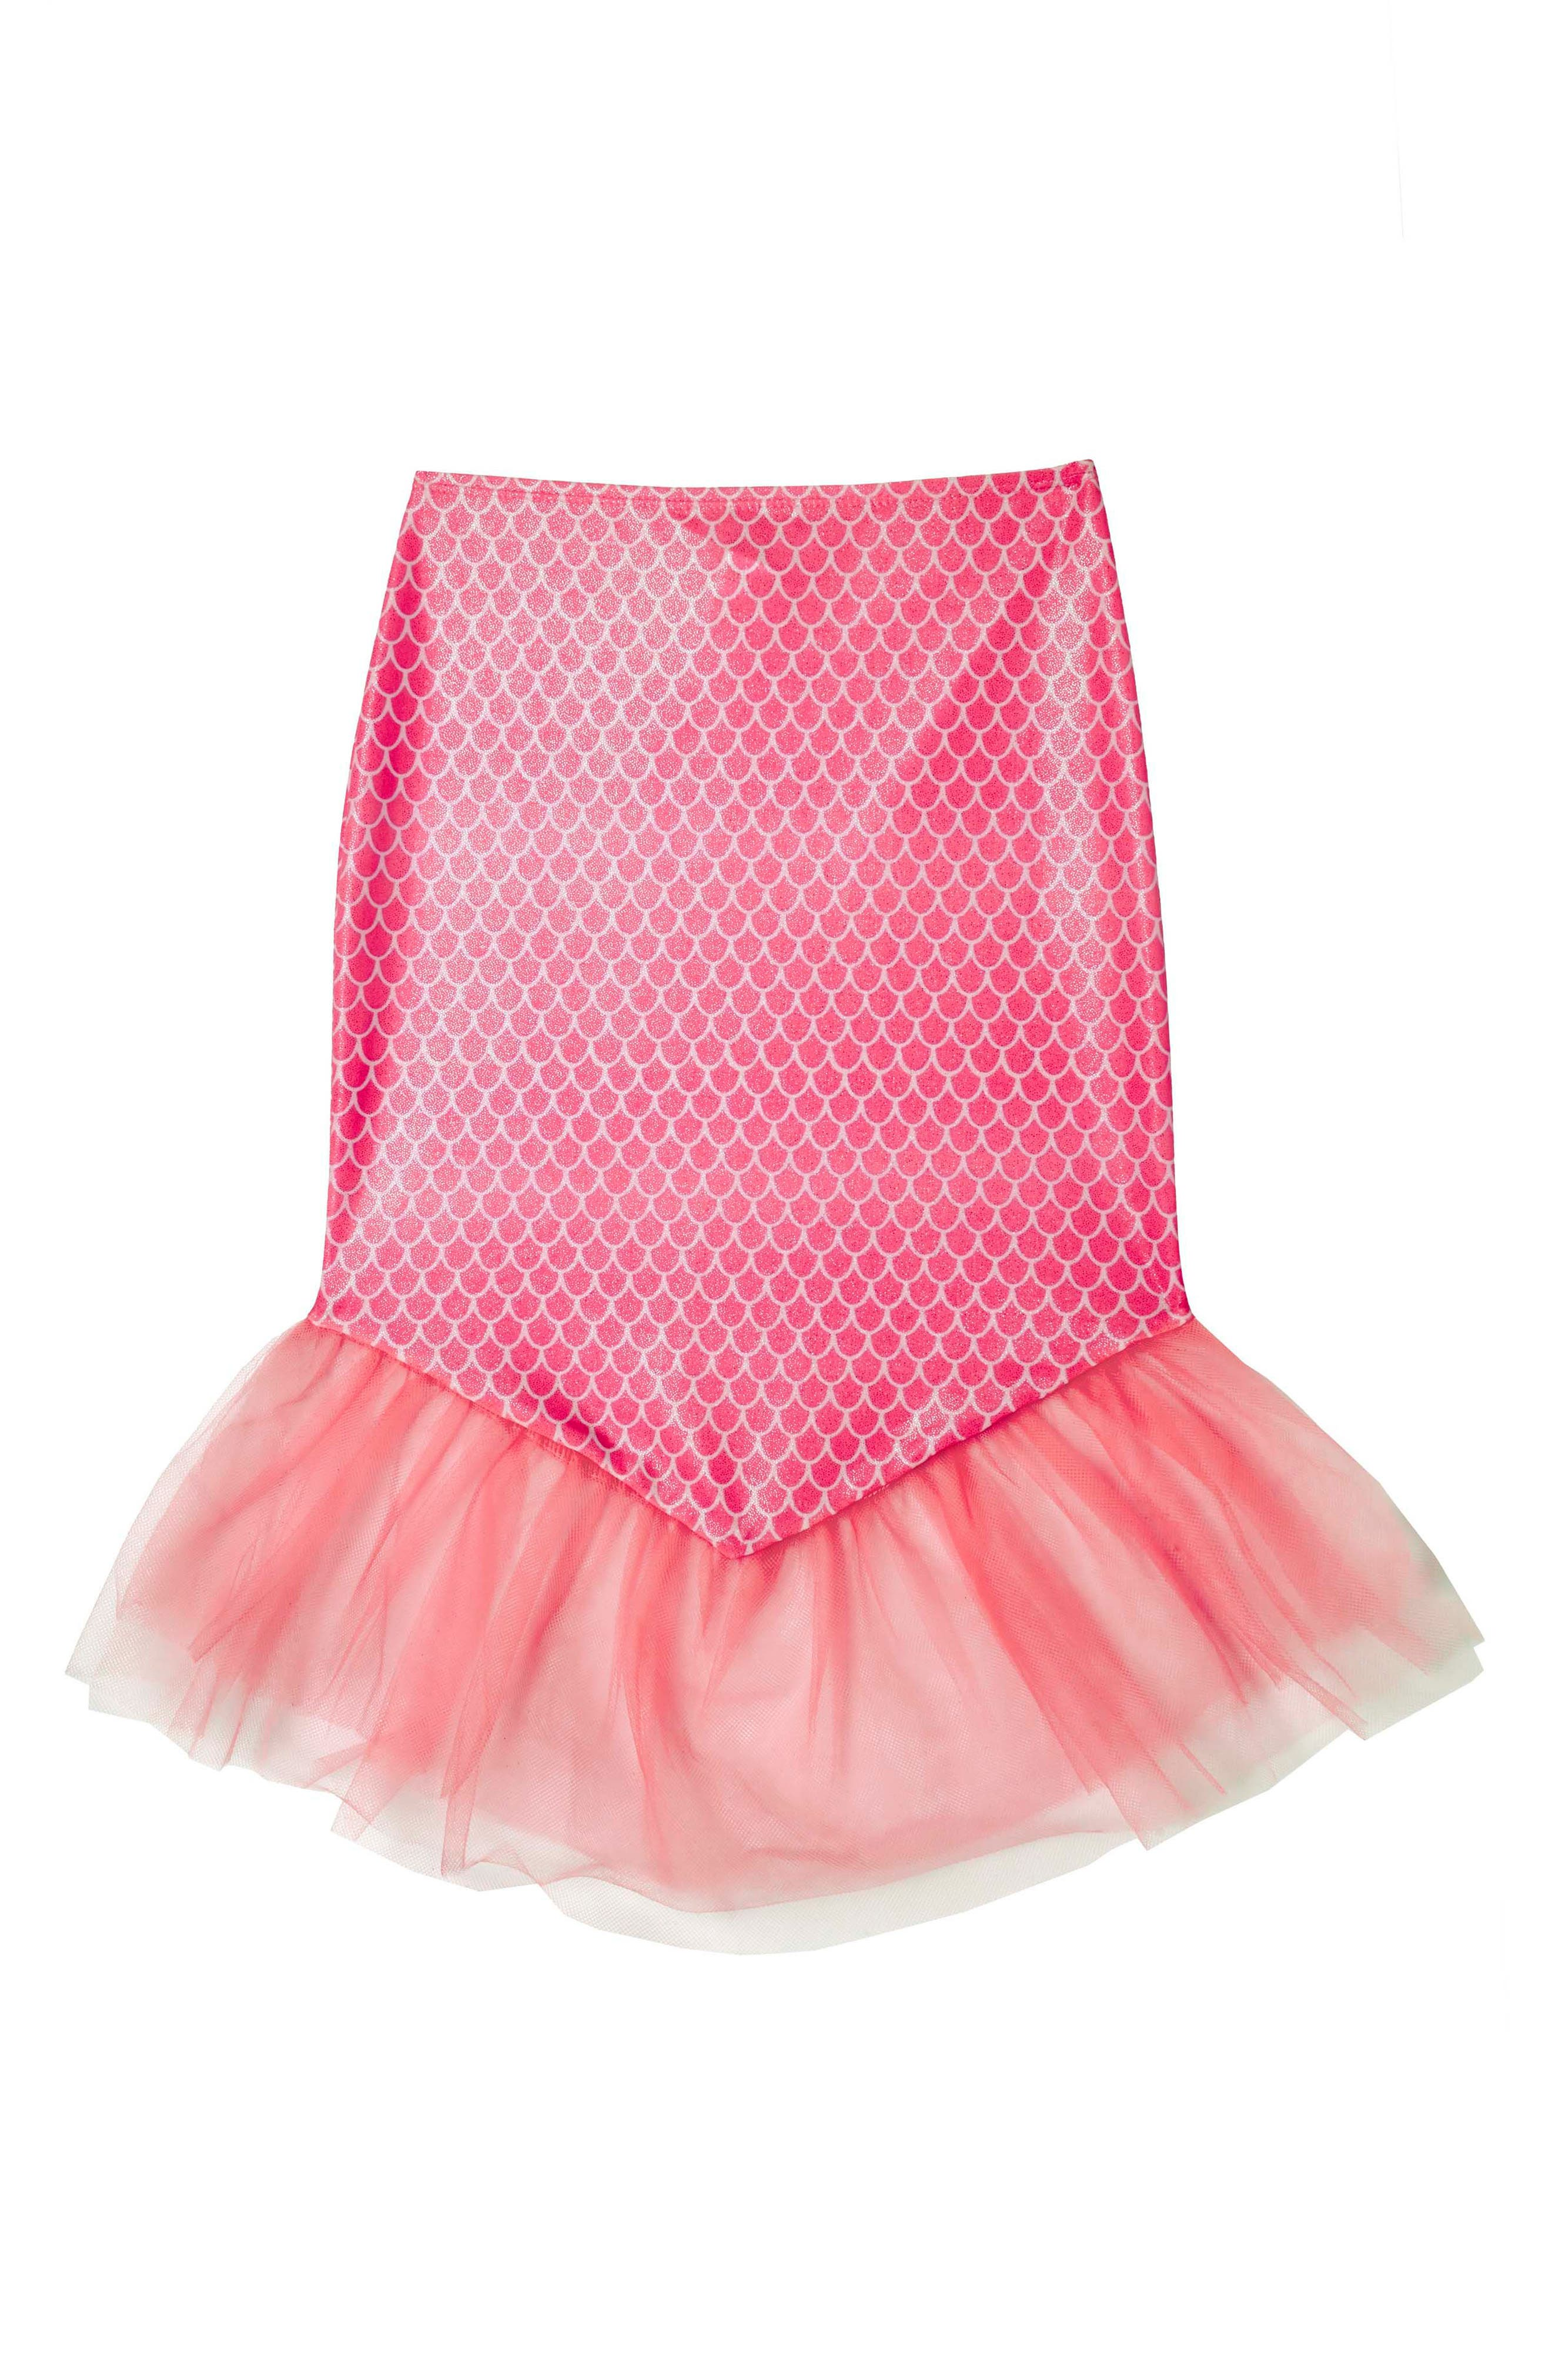 Alternate Image 1 Selected - Hula Star Mermaid Princess Cover-Up Skirt (Toddler Girls & Little Girls)